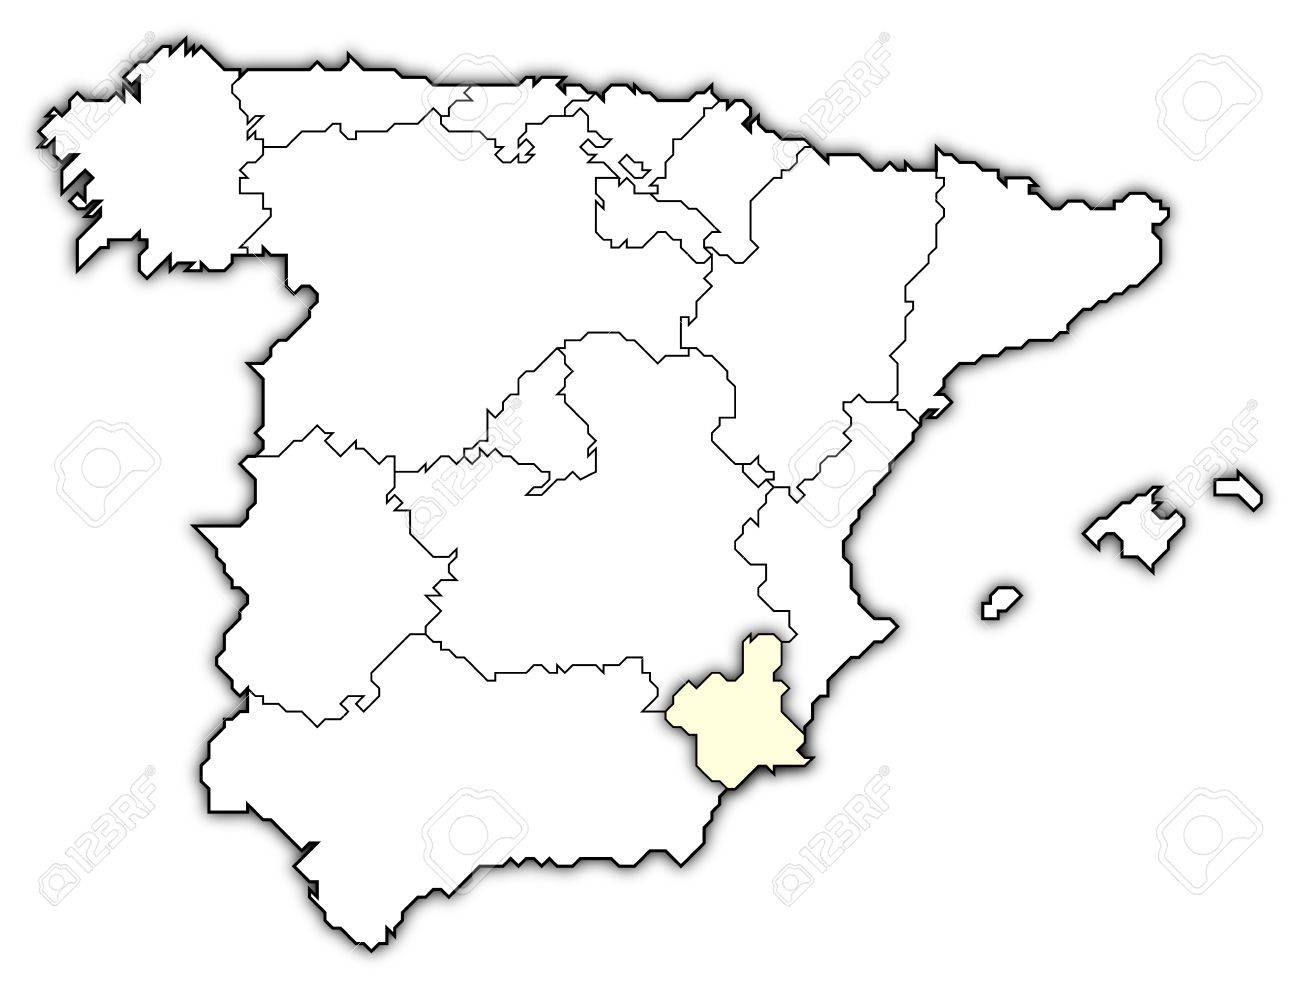 Murcia Map Of Spain.Political Map Of Spain With The Several Regions Where Murcia